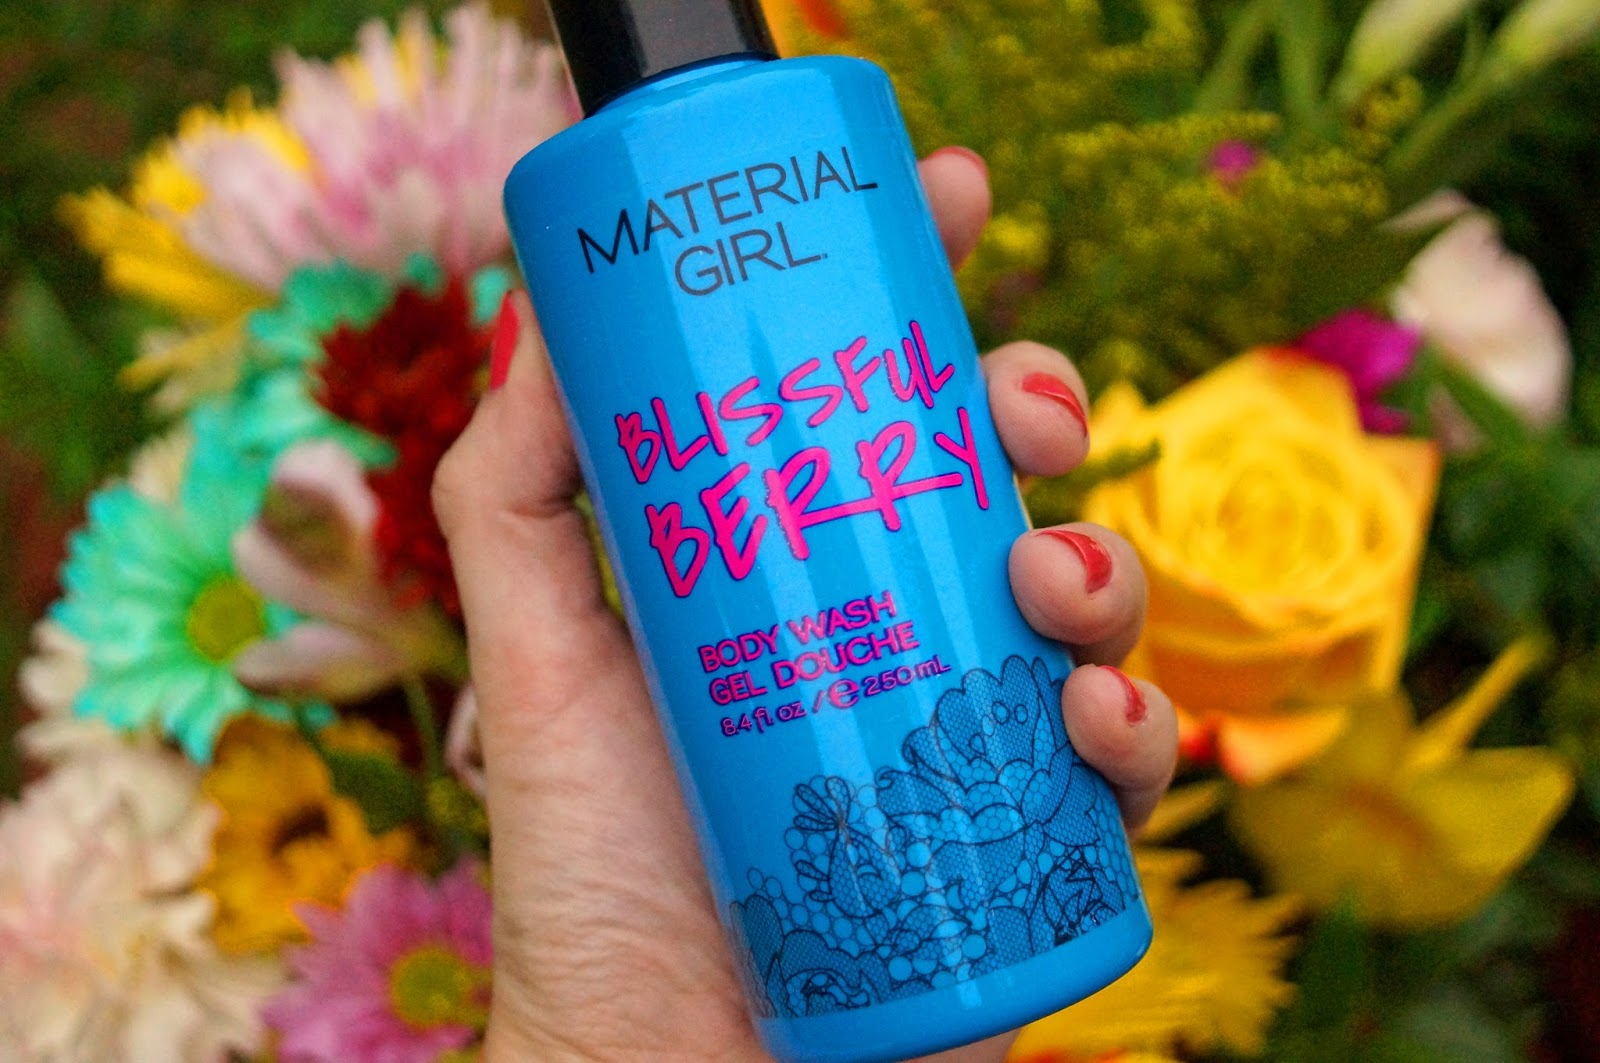 This Body Wash by Material Girl smells like flowers!!